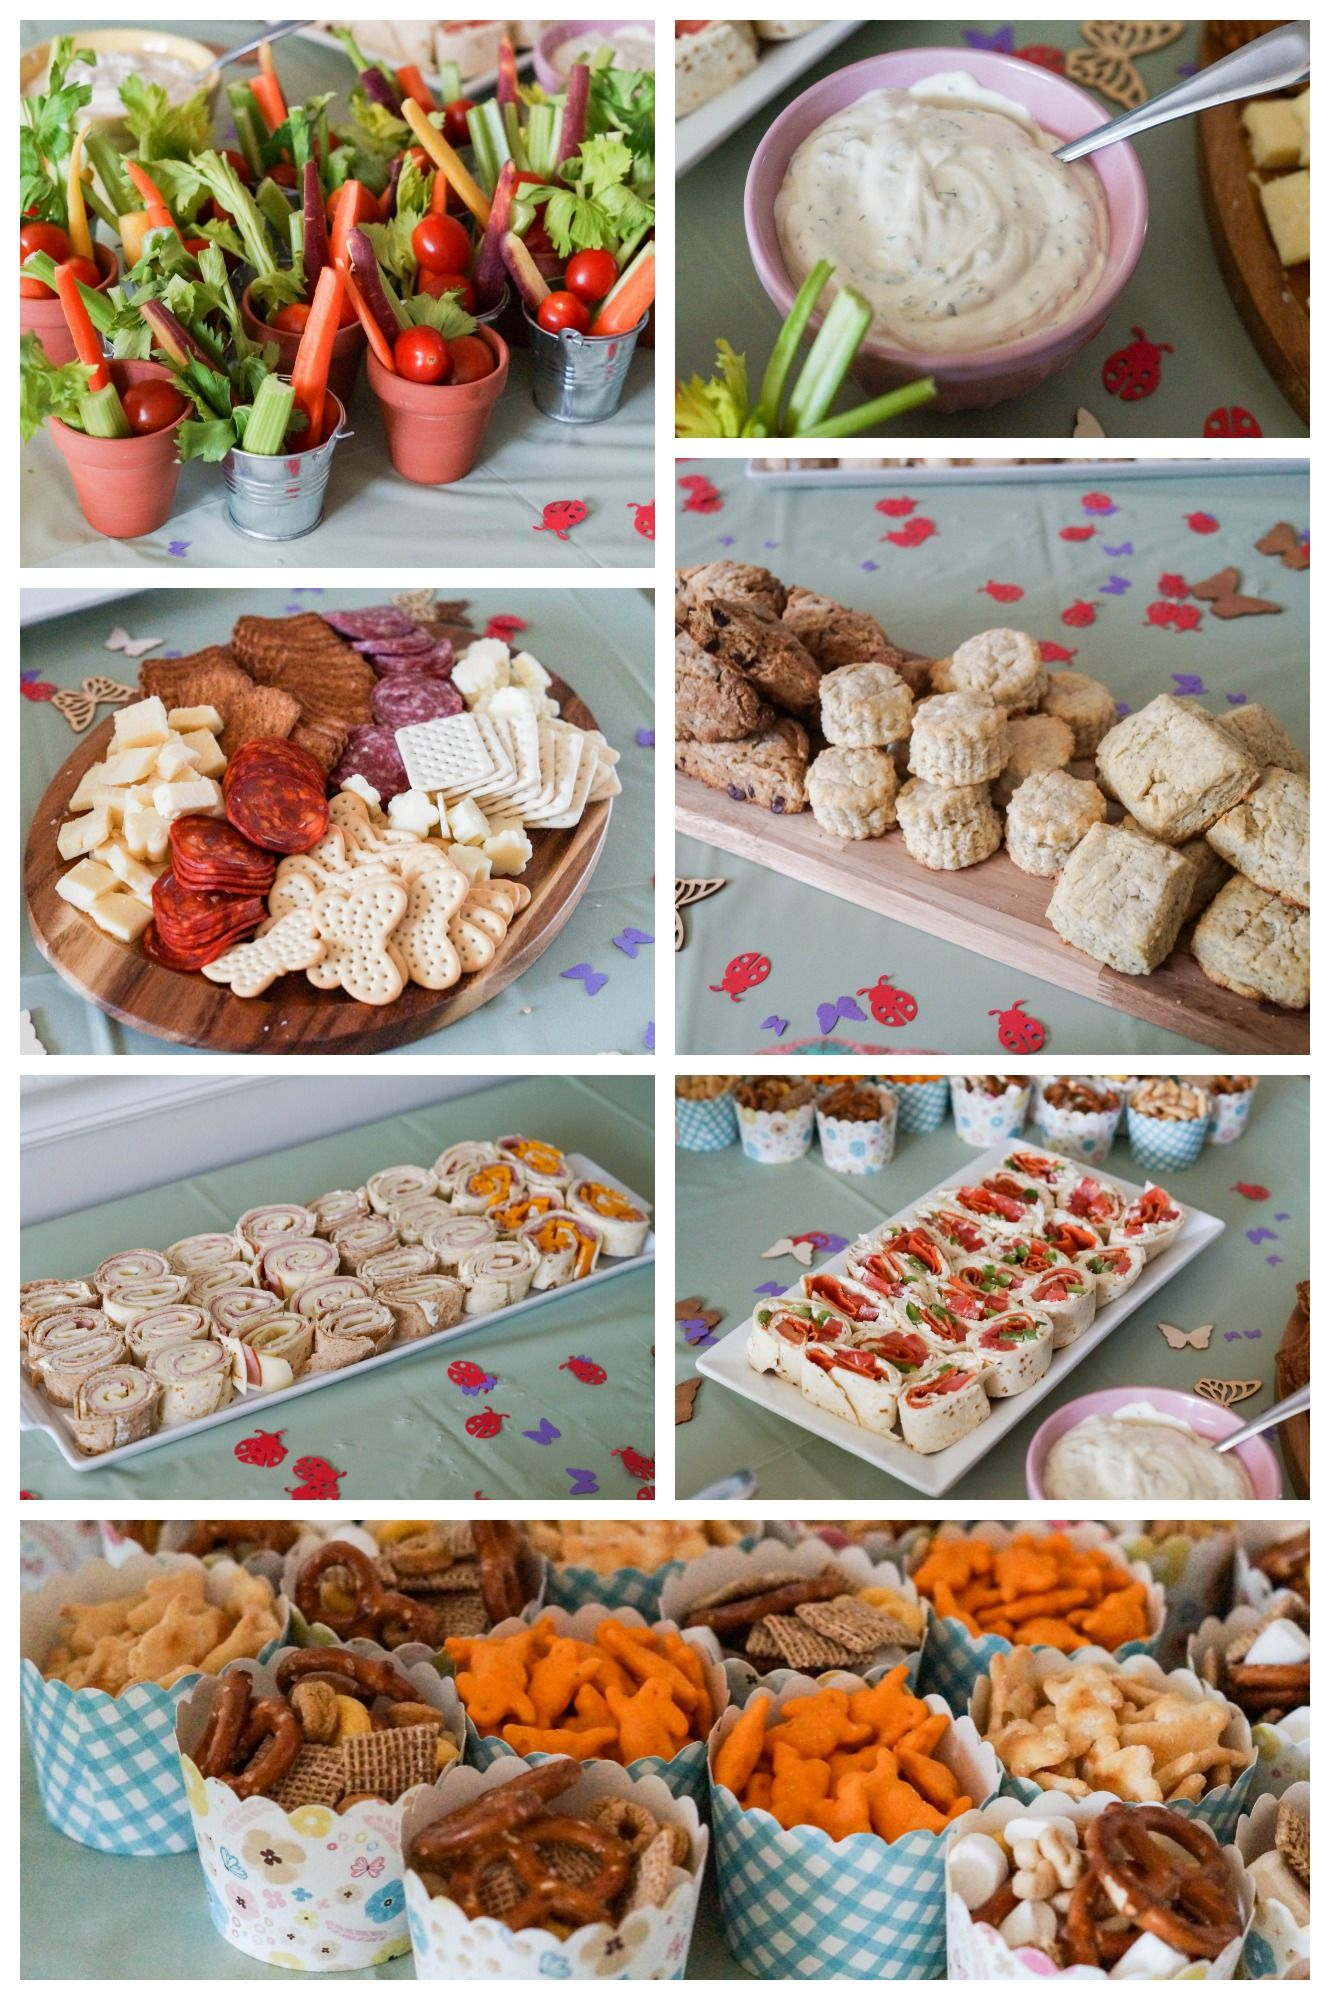 Spring Garden Birthday Party Food 3 Year Old